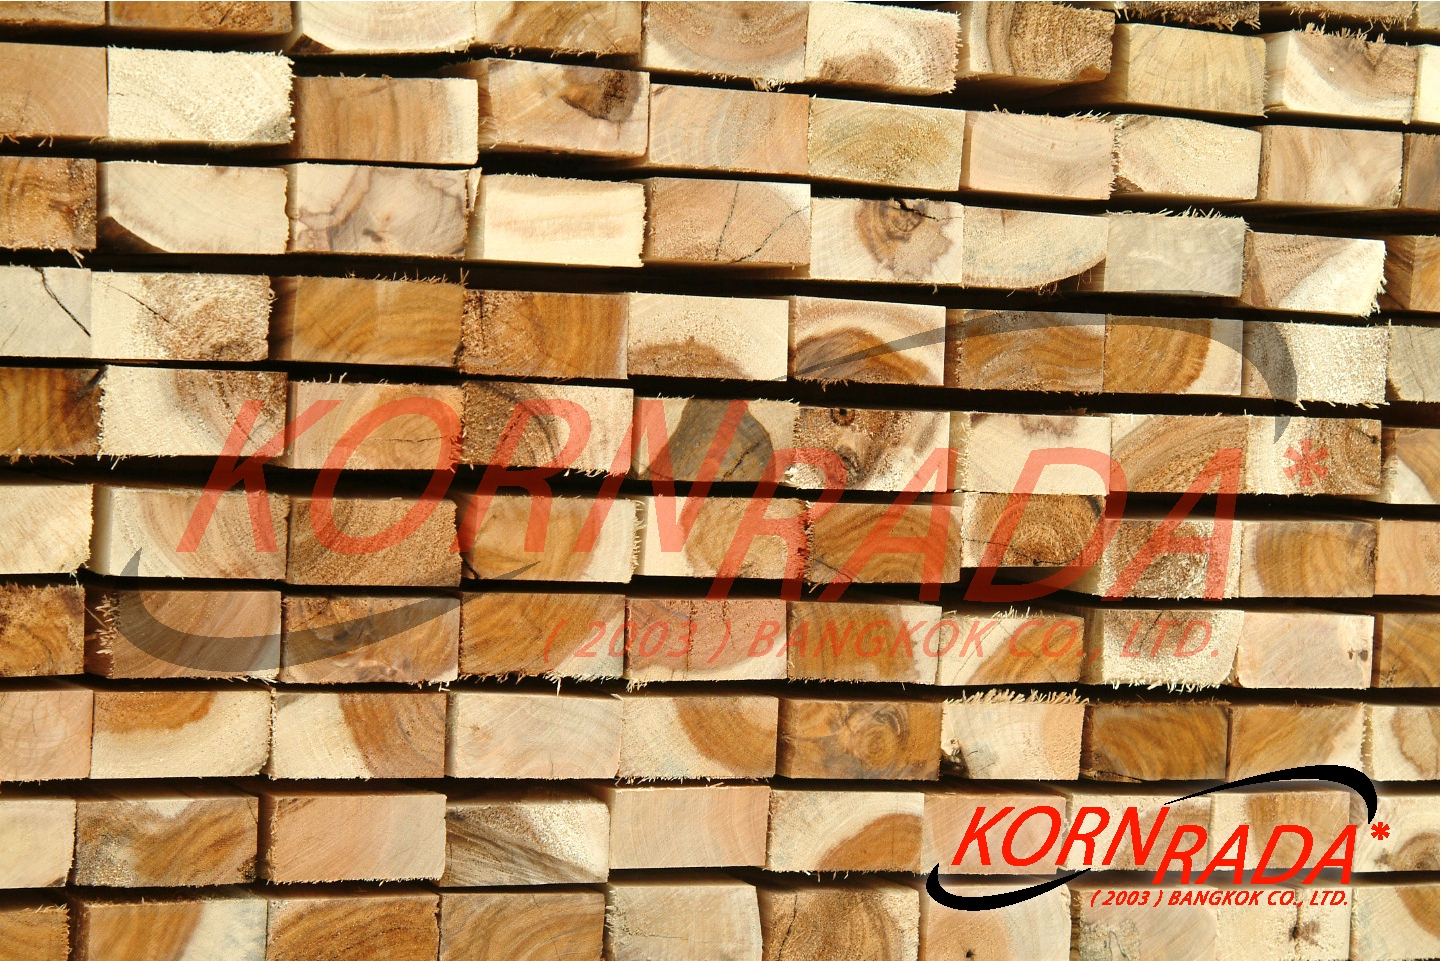 kornrada_products_2079